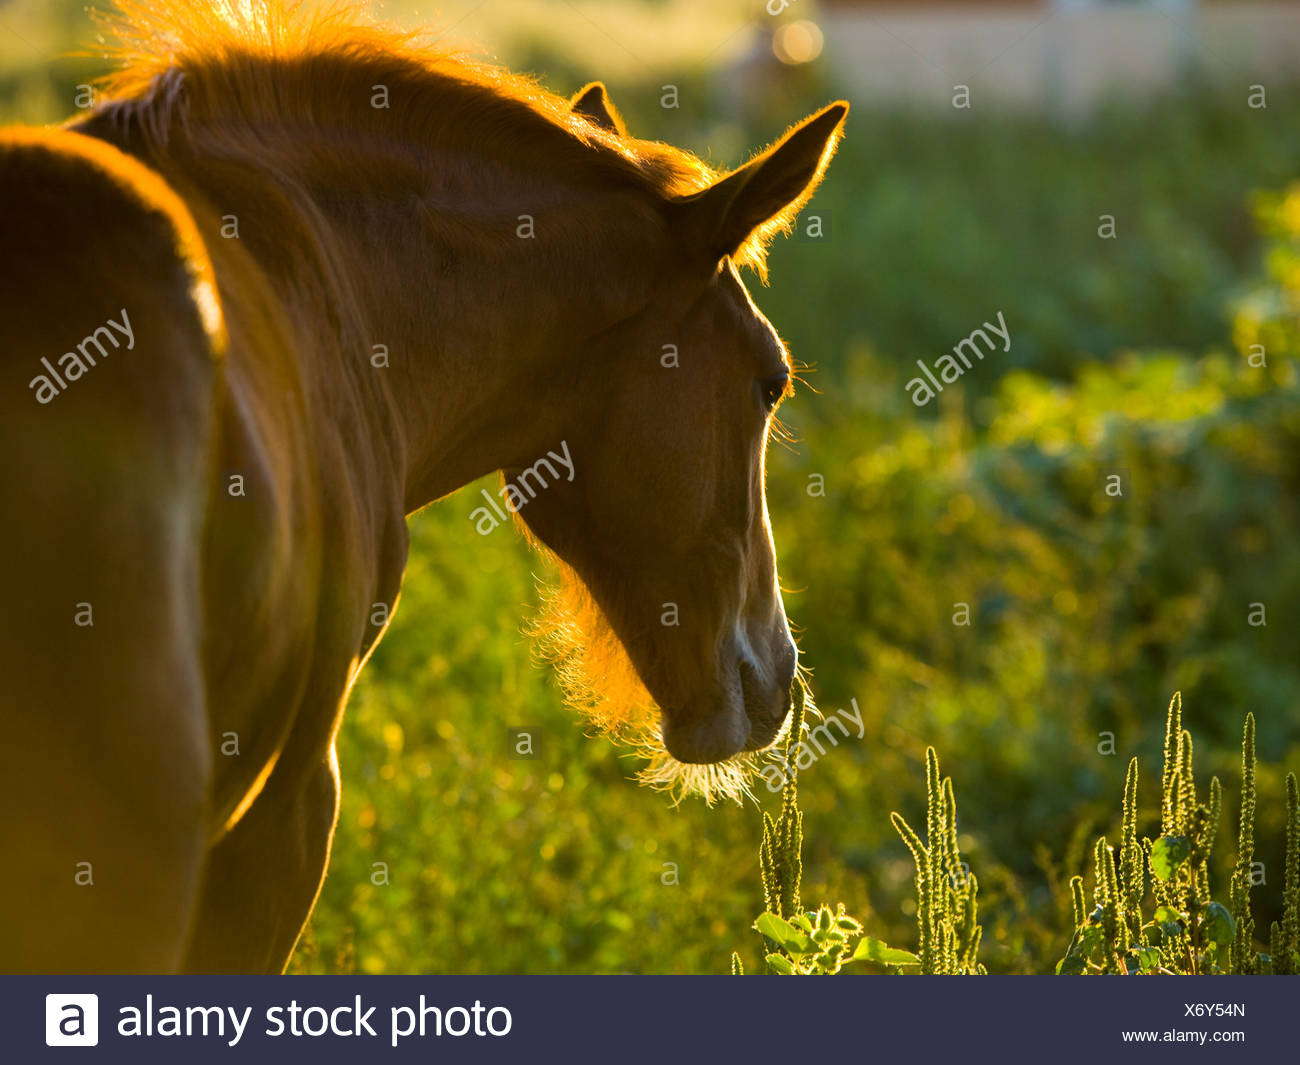 horse in a field - Stock Image